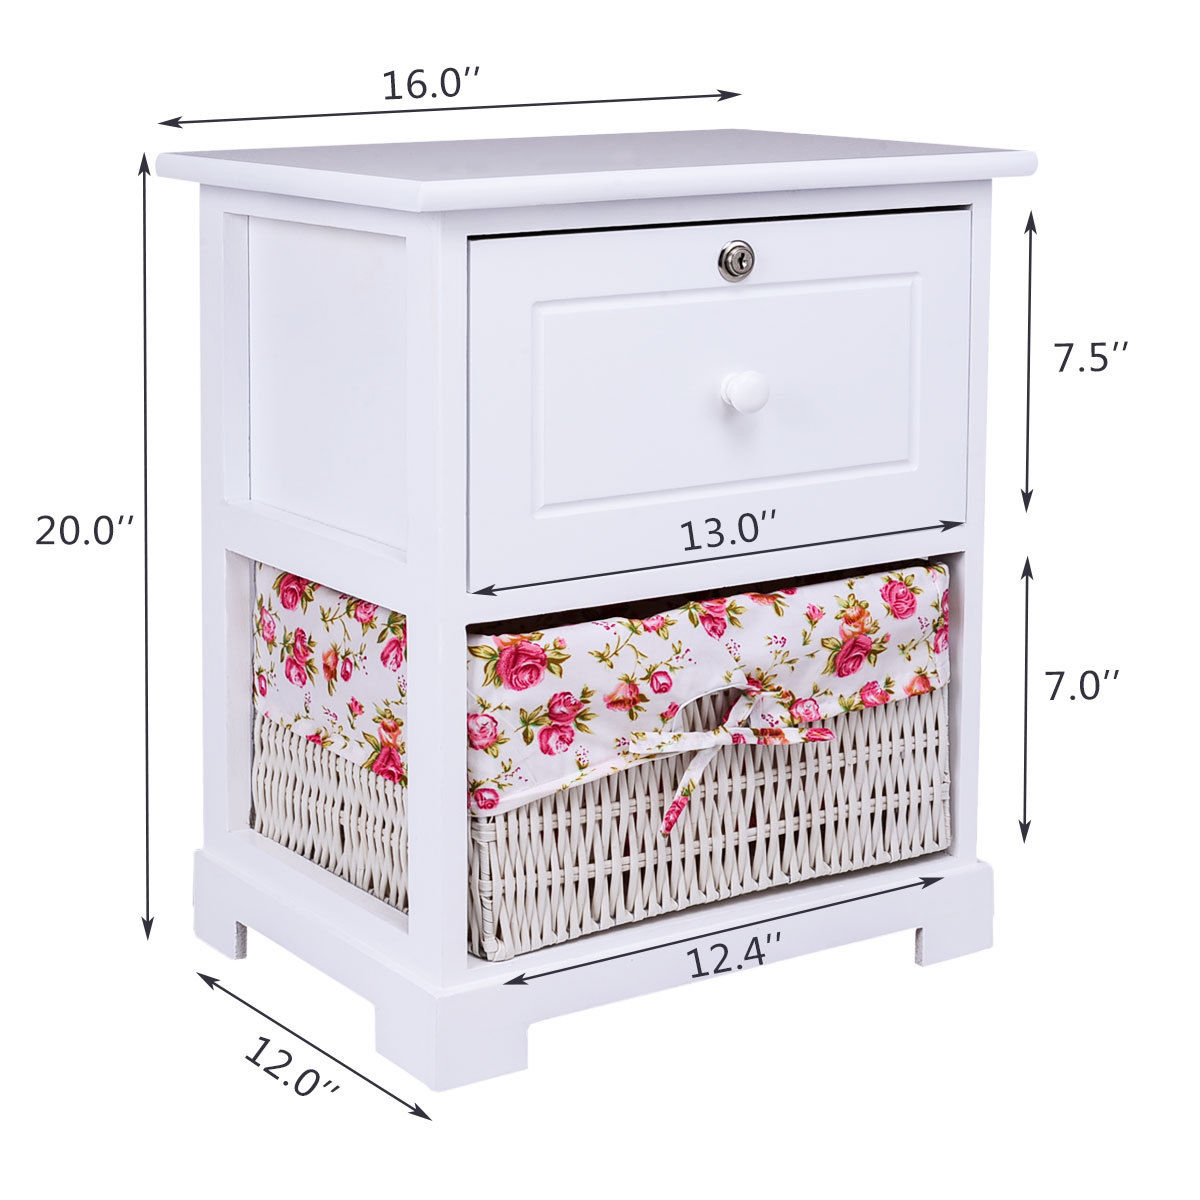 Gymax 2PCS 2 Tiers Wood Nightstand1 Drawer Bedside End Table Organizer W/Basket White - image 2 of 8